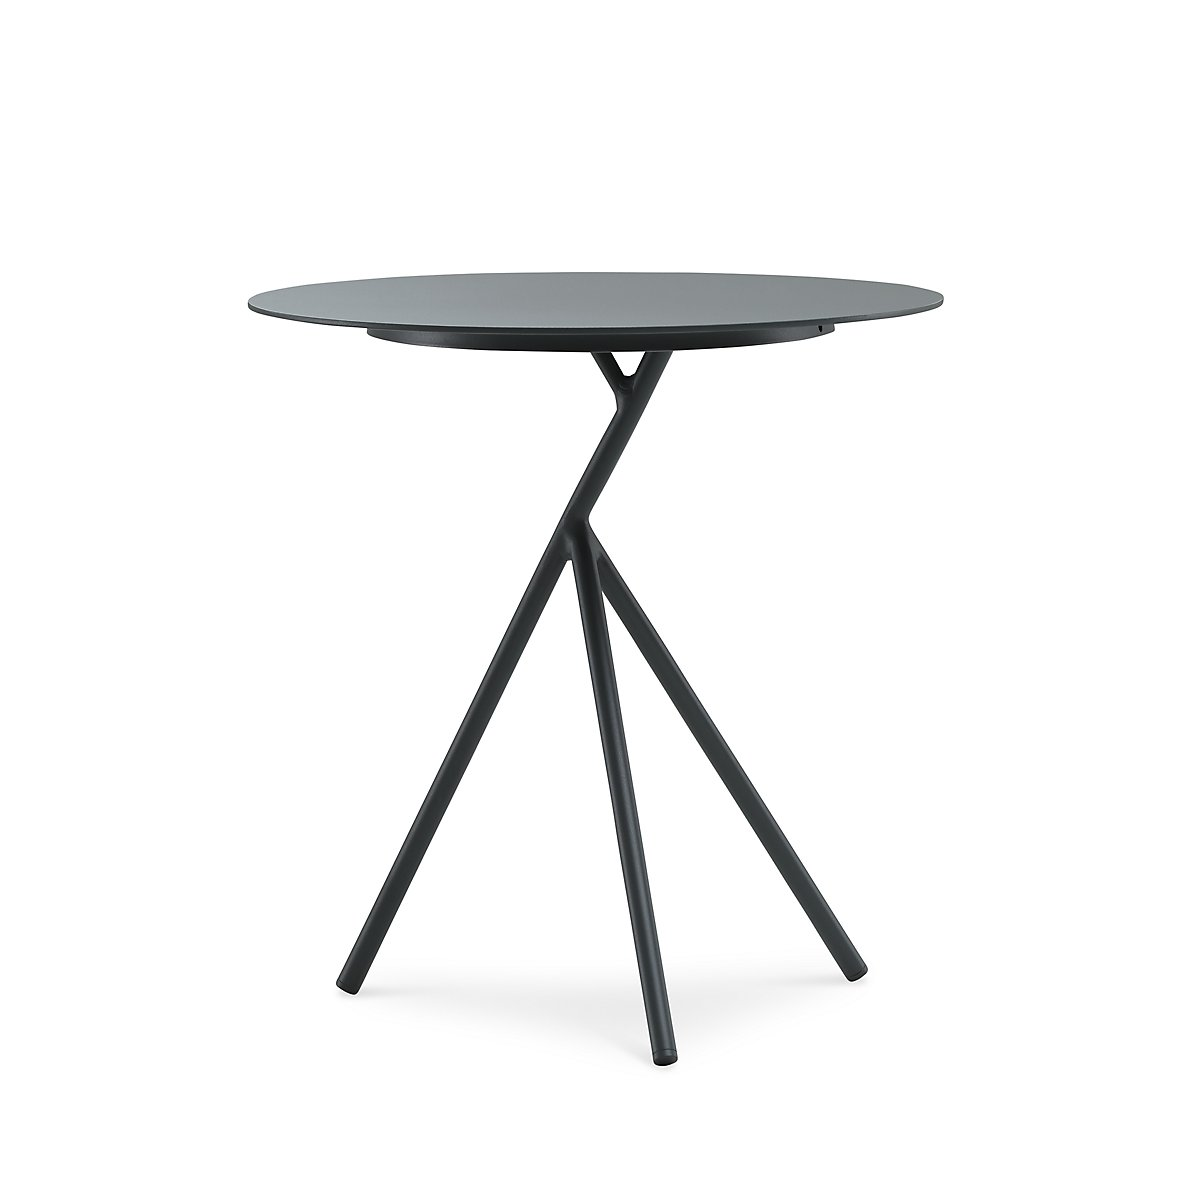 ibiza dark gray low accent table homepop metal white night tables for bedroom kohls gift registry wedding blue and oriental lamps safavieh side pier imports furniture clear end